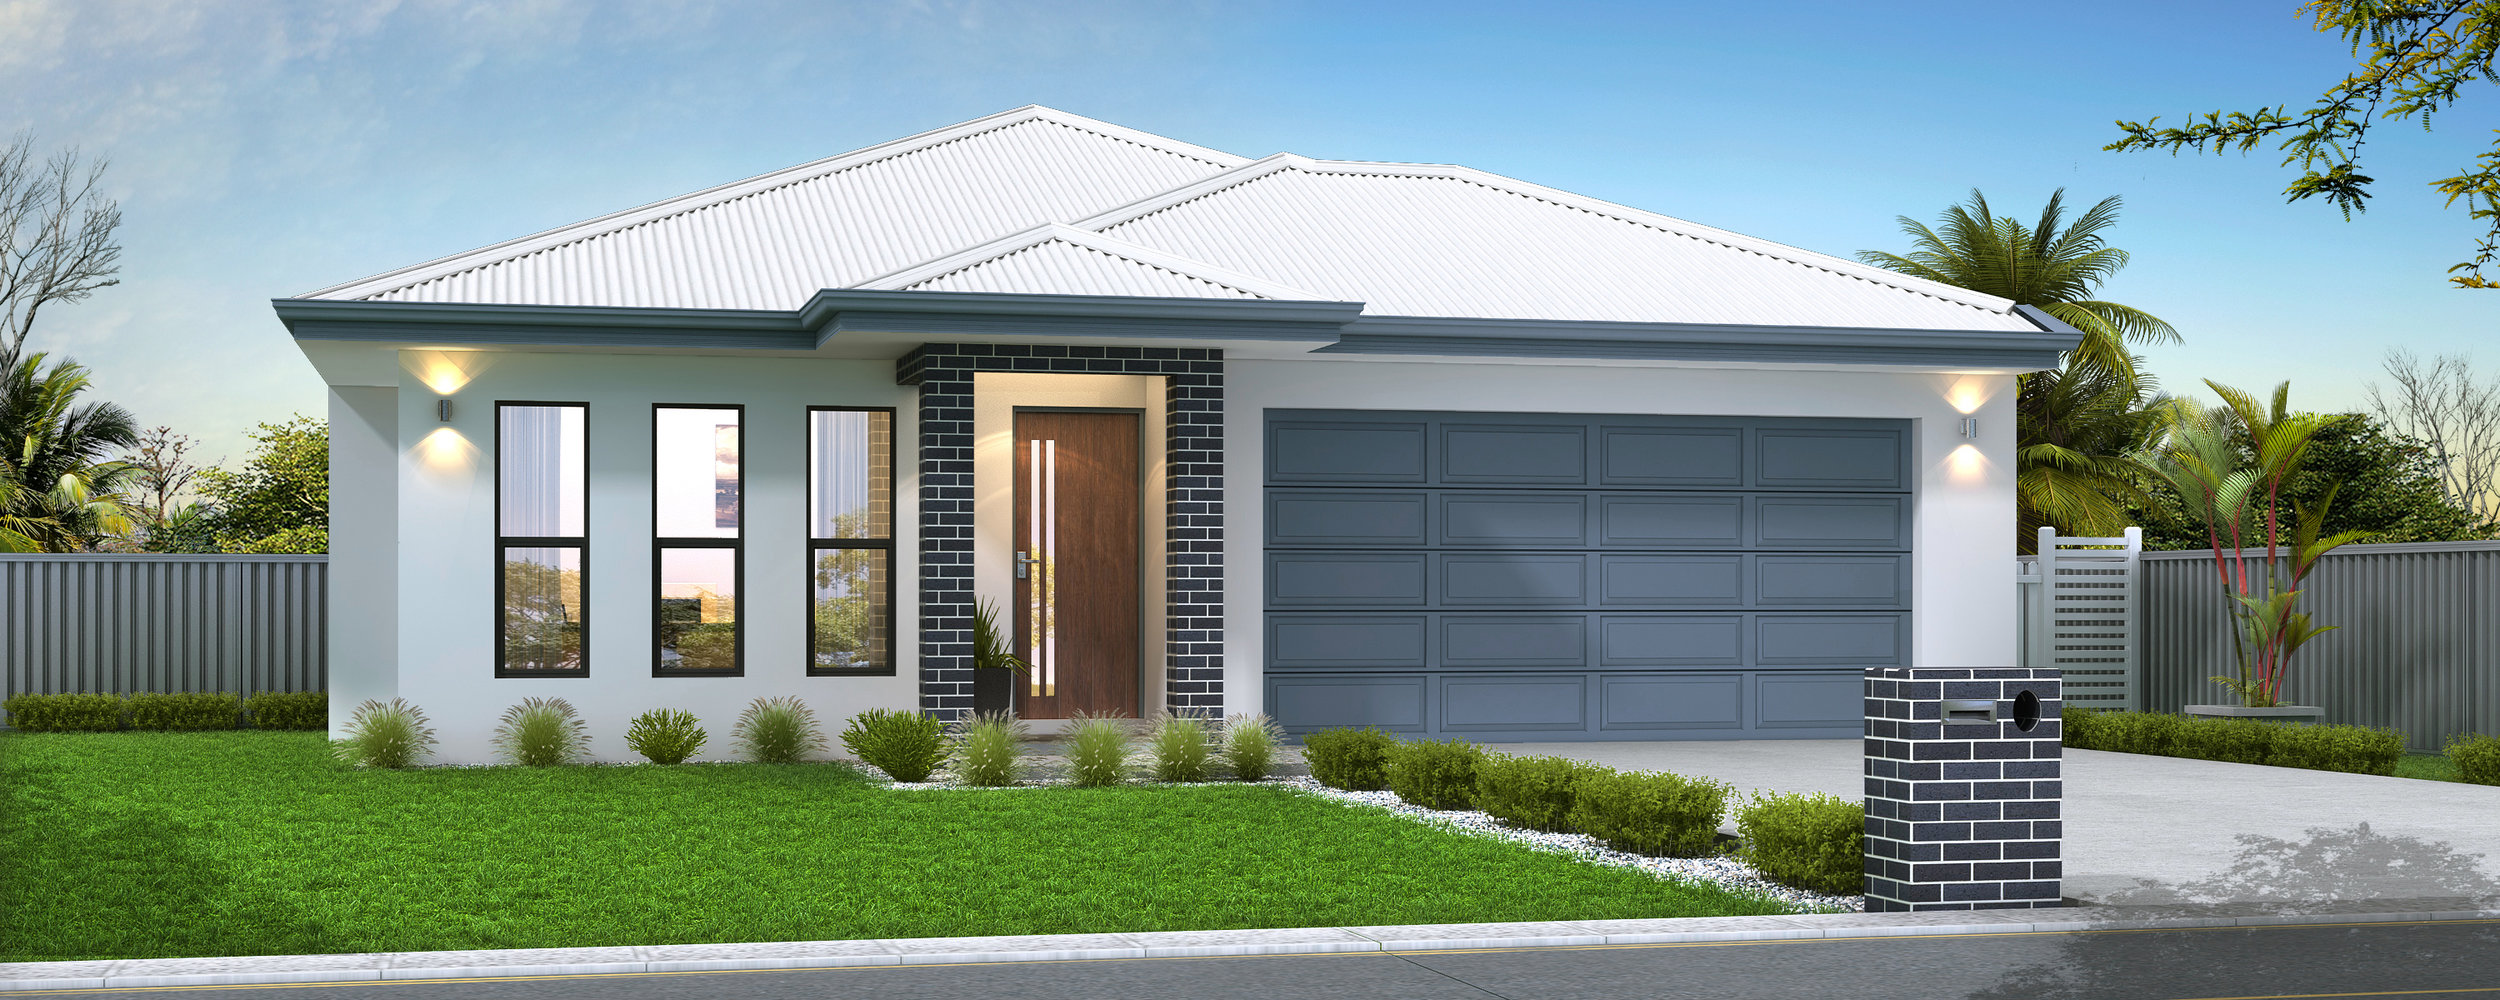 Our Popular Emma 180 Design with 4 Bedrooms, 2 Bathrooms, Double Garage, Theatre and Walk in Pantry!  *Please Note - Facade Illustrations are indicative only.   CONTACT US FOR FURTHER INFORMATION OR VISIT OUR DISPLAY AT GREATER ASCOT